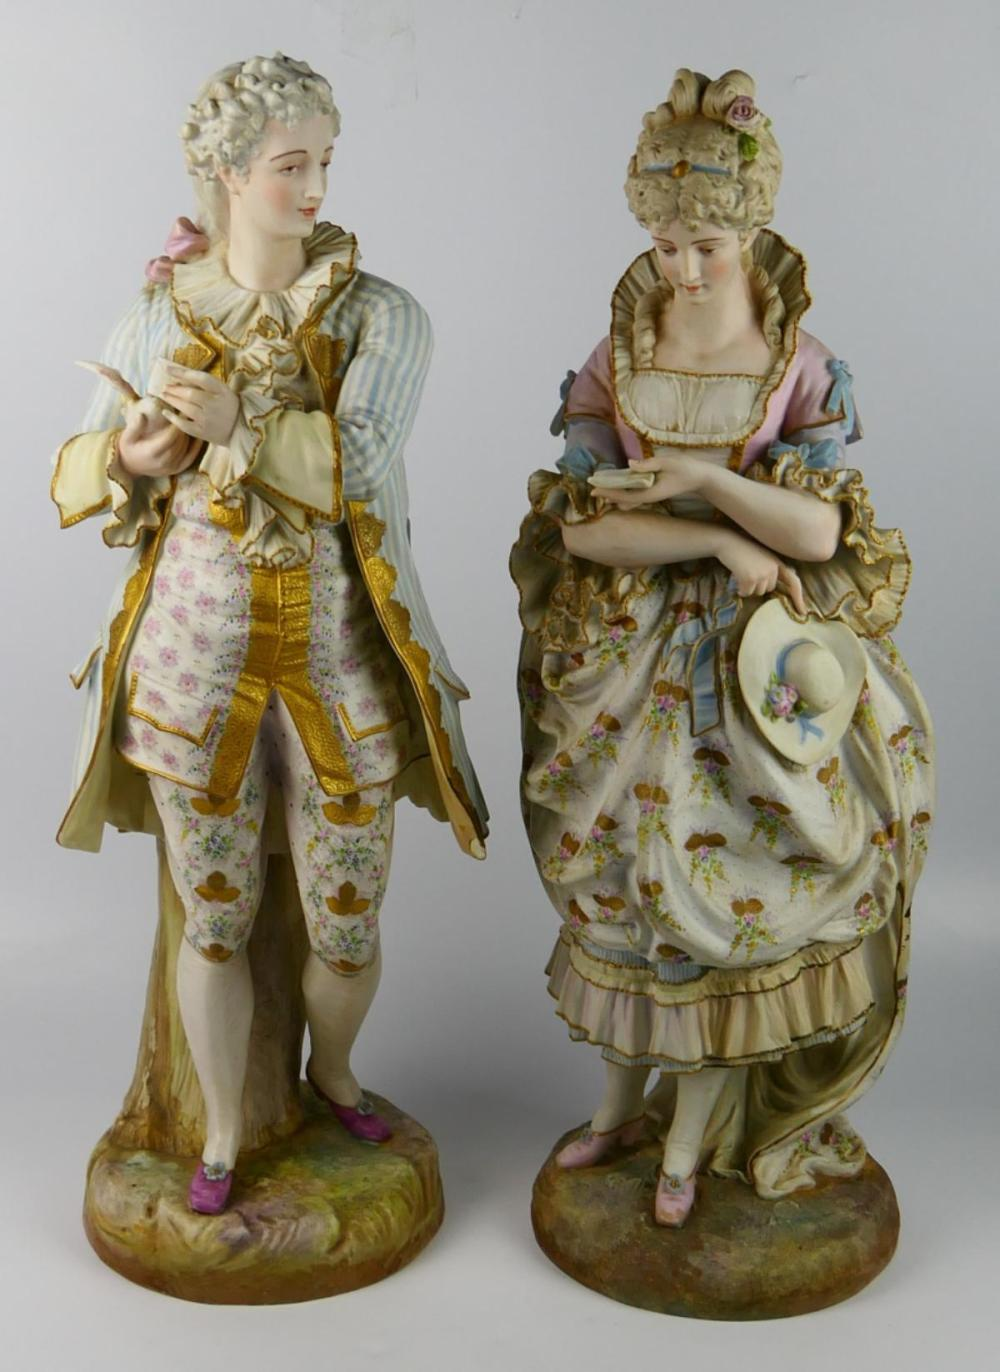 LARGE PAIR 19TH CENTURY CHANTILLY BISQUE FIGURINES